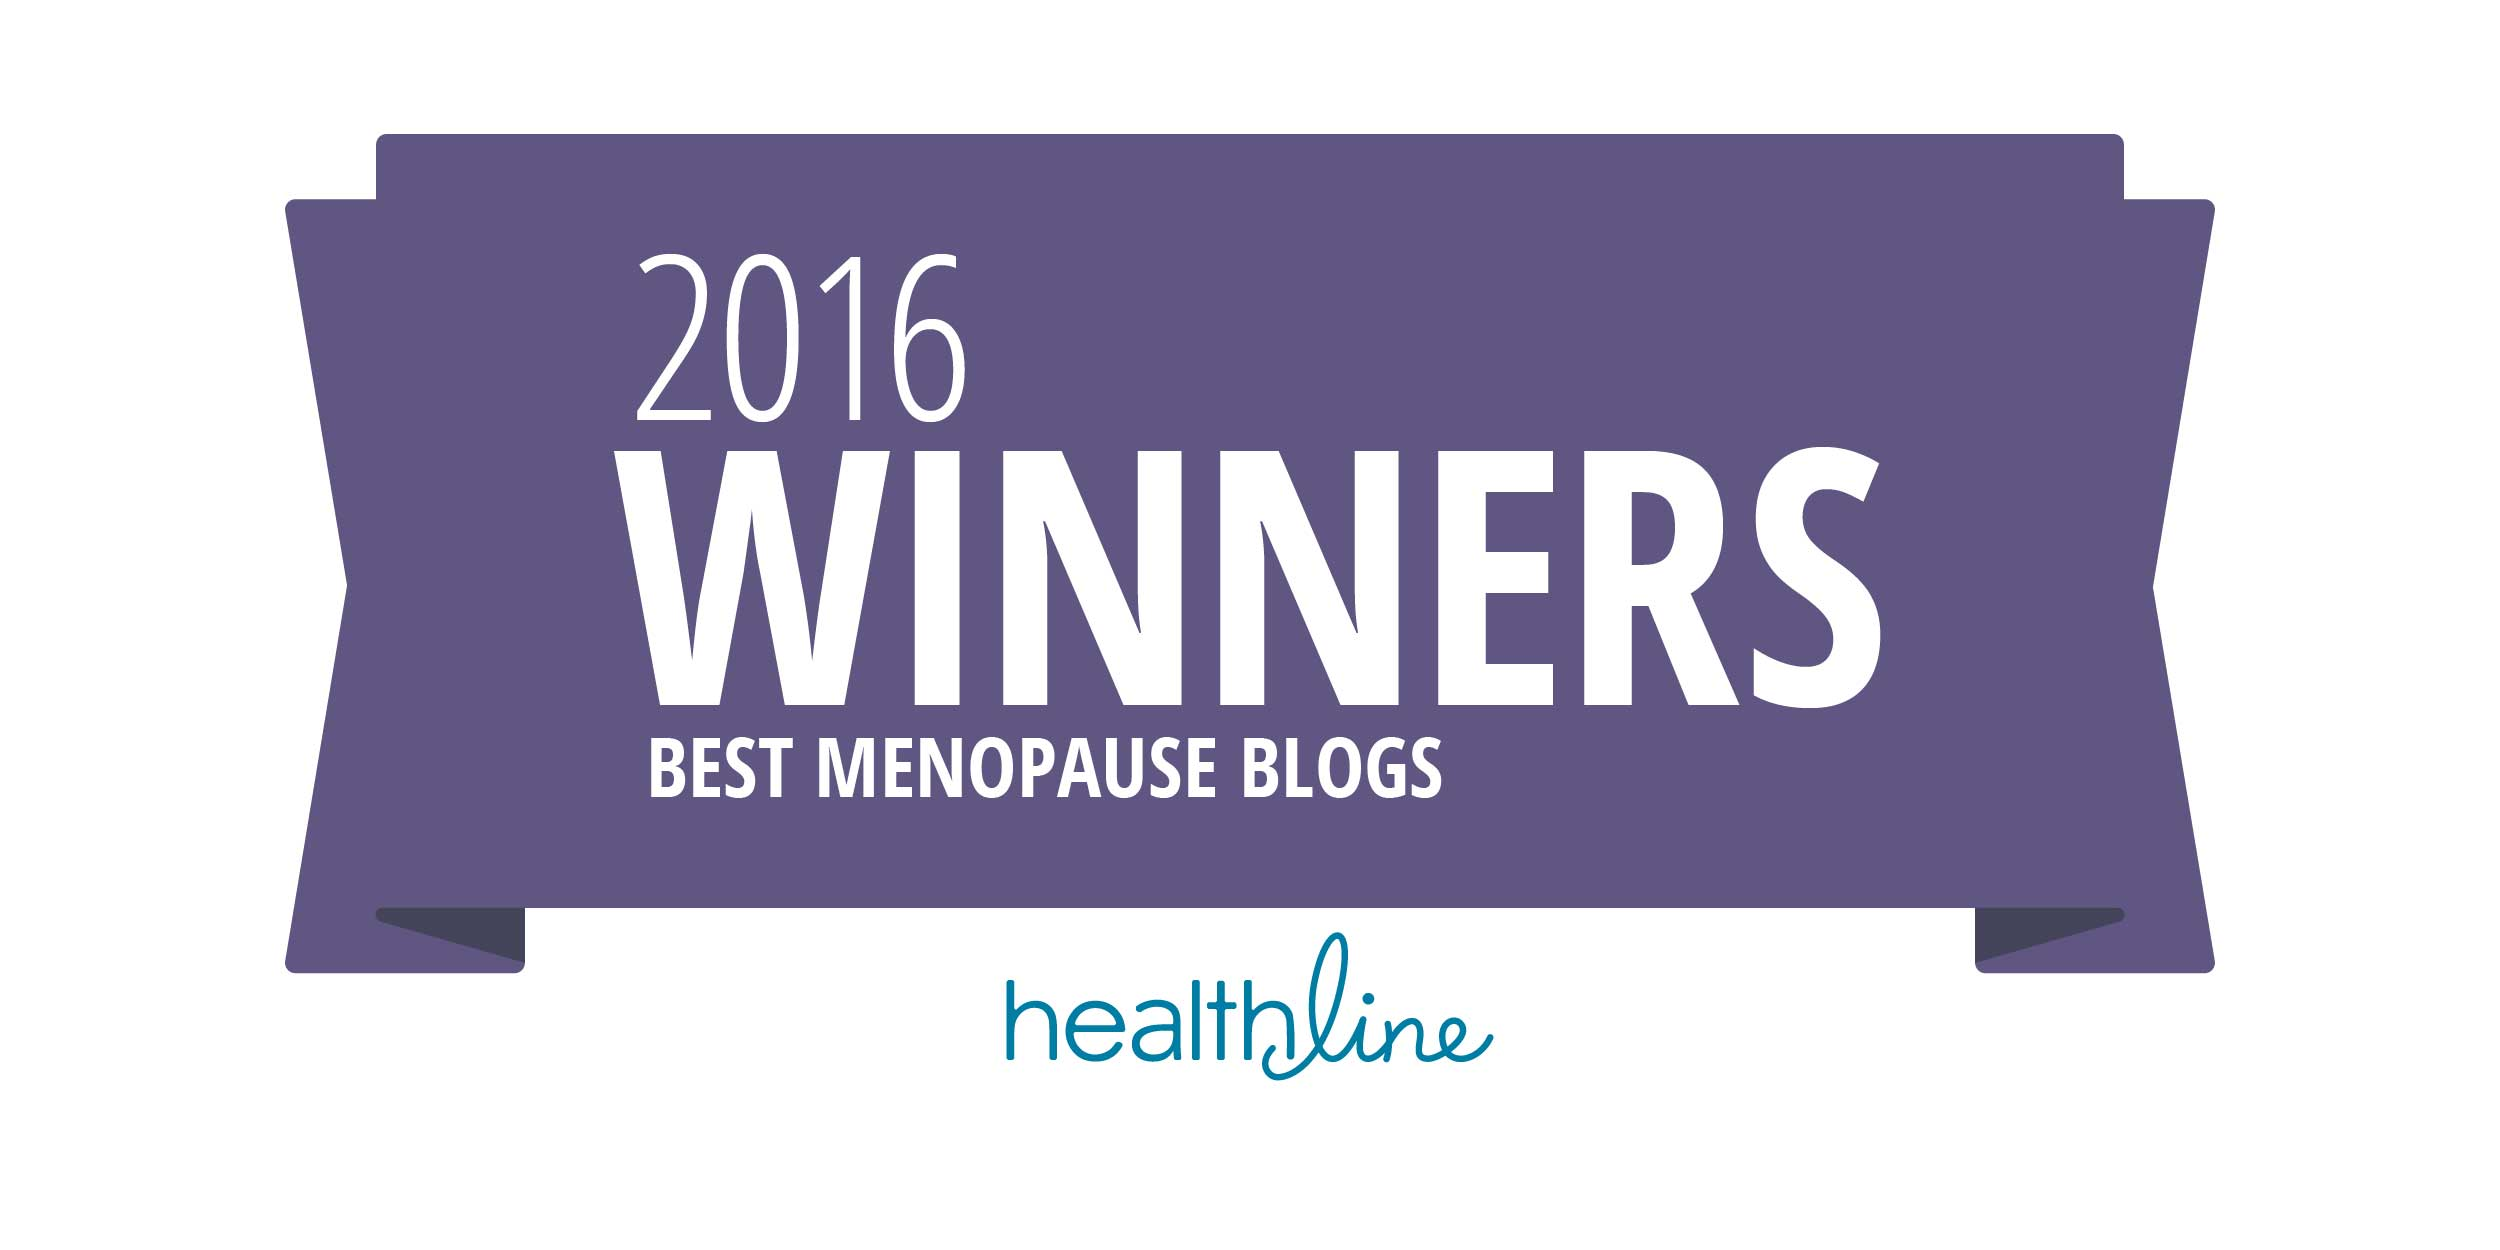 Best Menopause Blogs of the Year